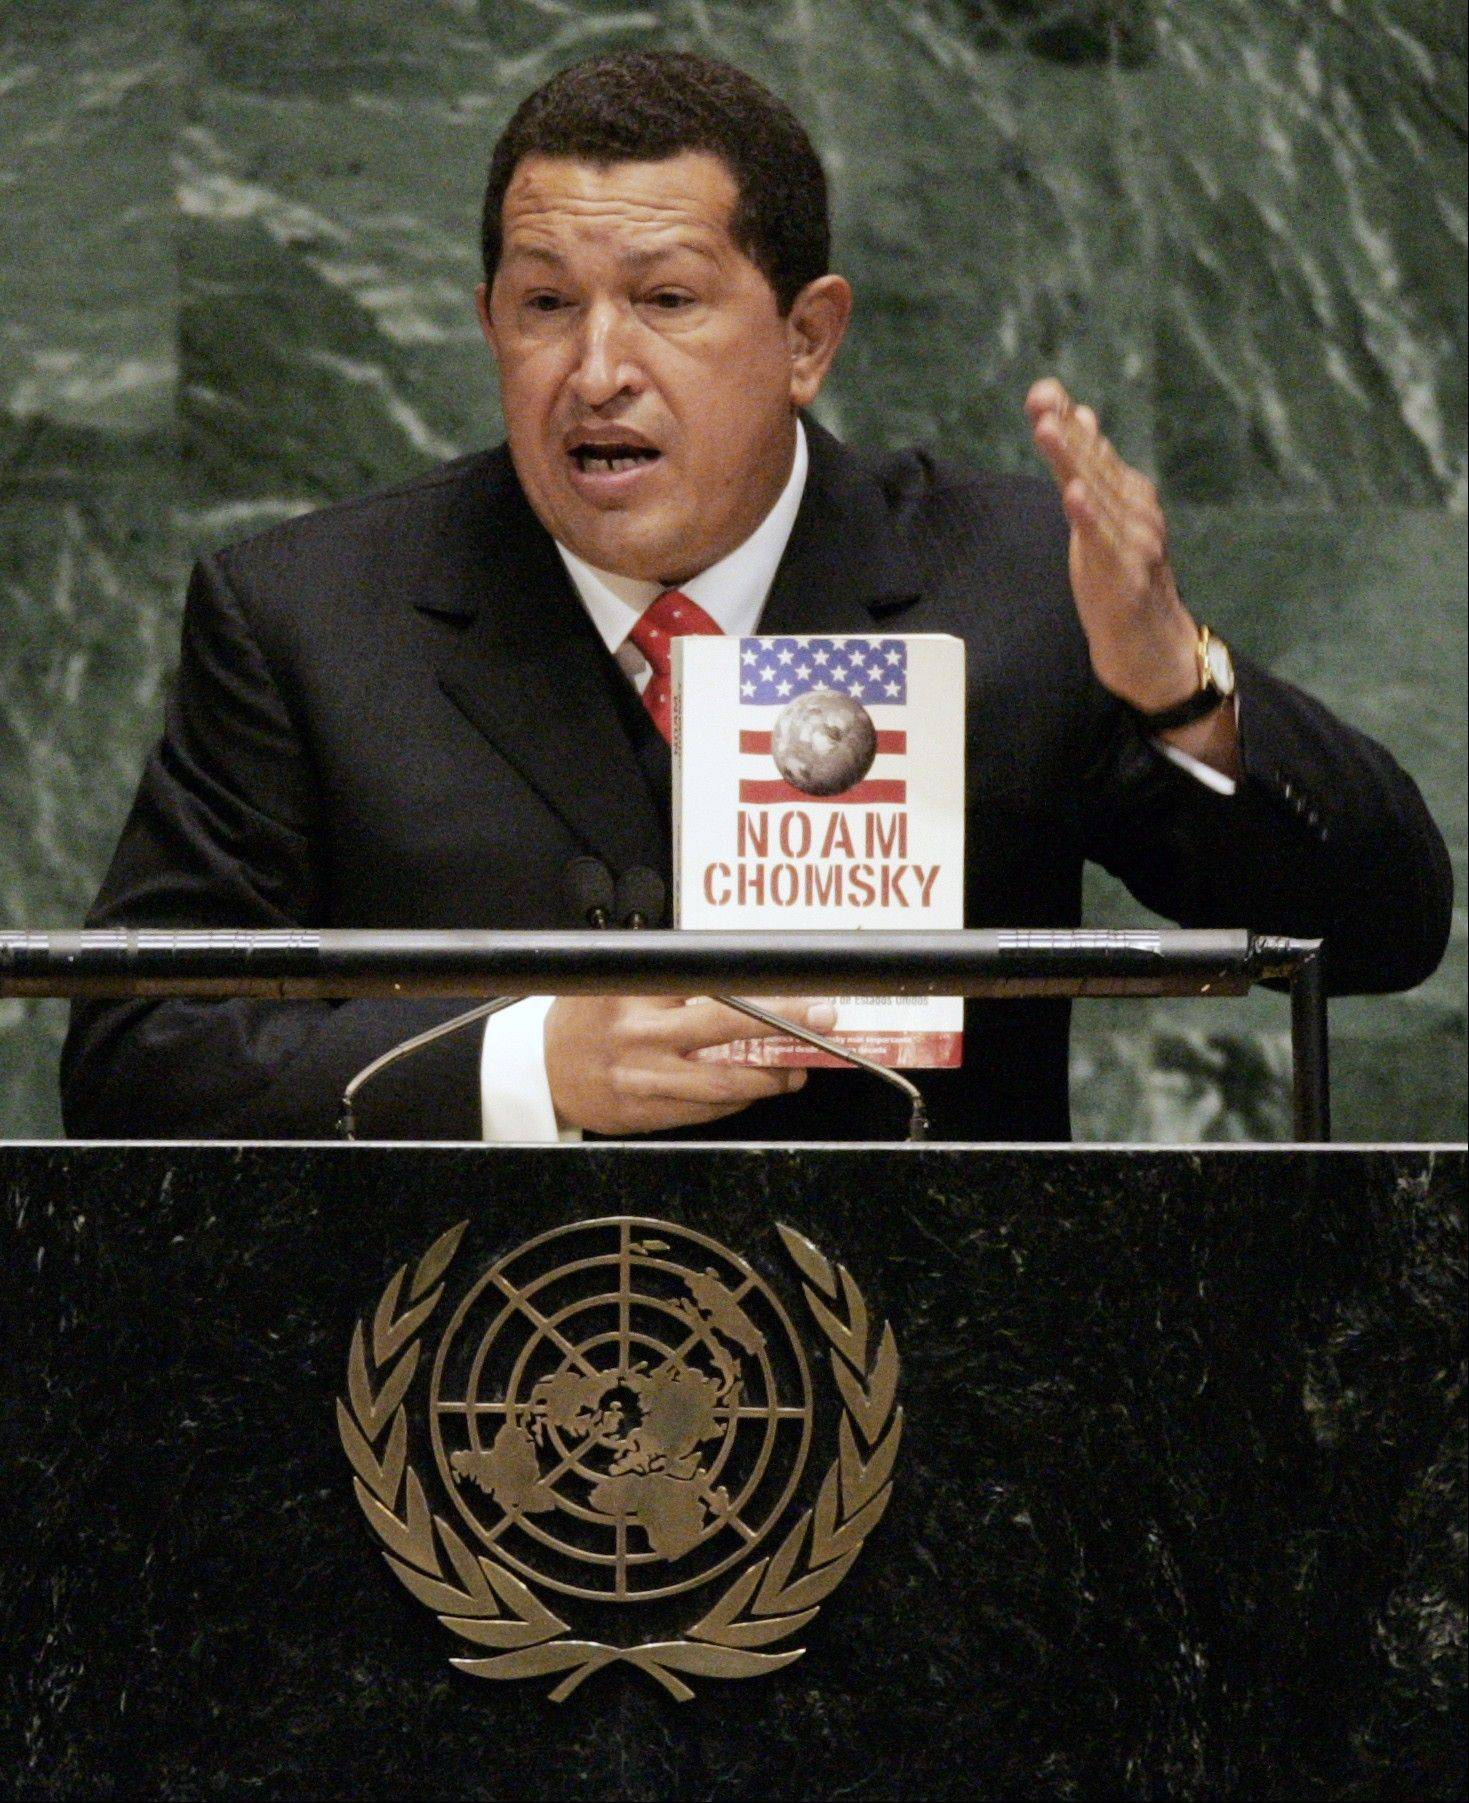 "In this 2006 file photo, Venezuelan President Hugo Chavez holds a Spanish-language version of ""Hegemony or Survival: America's Quest for Global Dominance"" by Noam Chomsky while addressing the 61st session of the United Nations General Assembly at U.N. headquarters. During his address, Chavez, who often tried to cast himself as a champion of the American poor, called President George W. Bush ""the devil."""